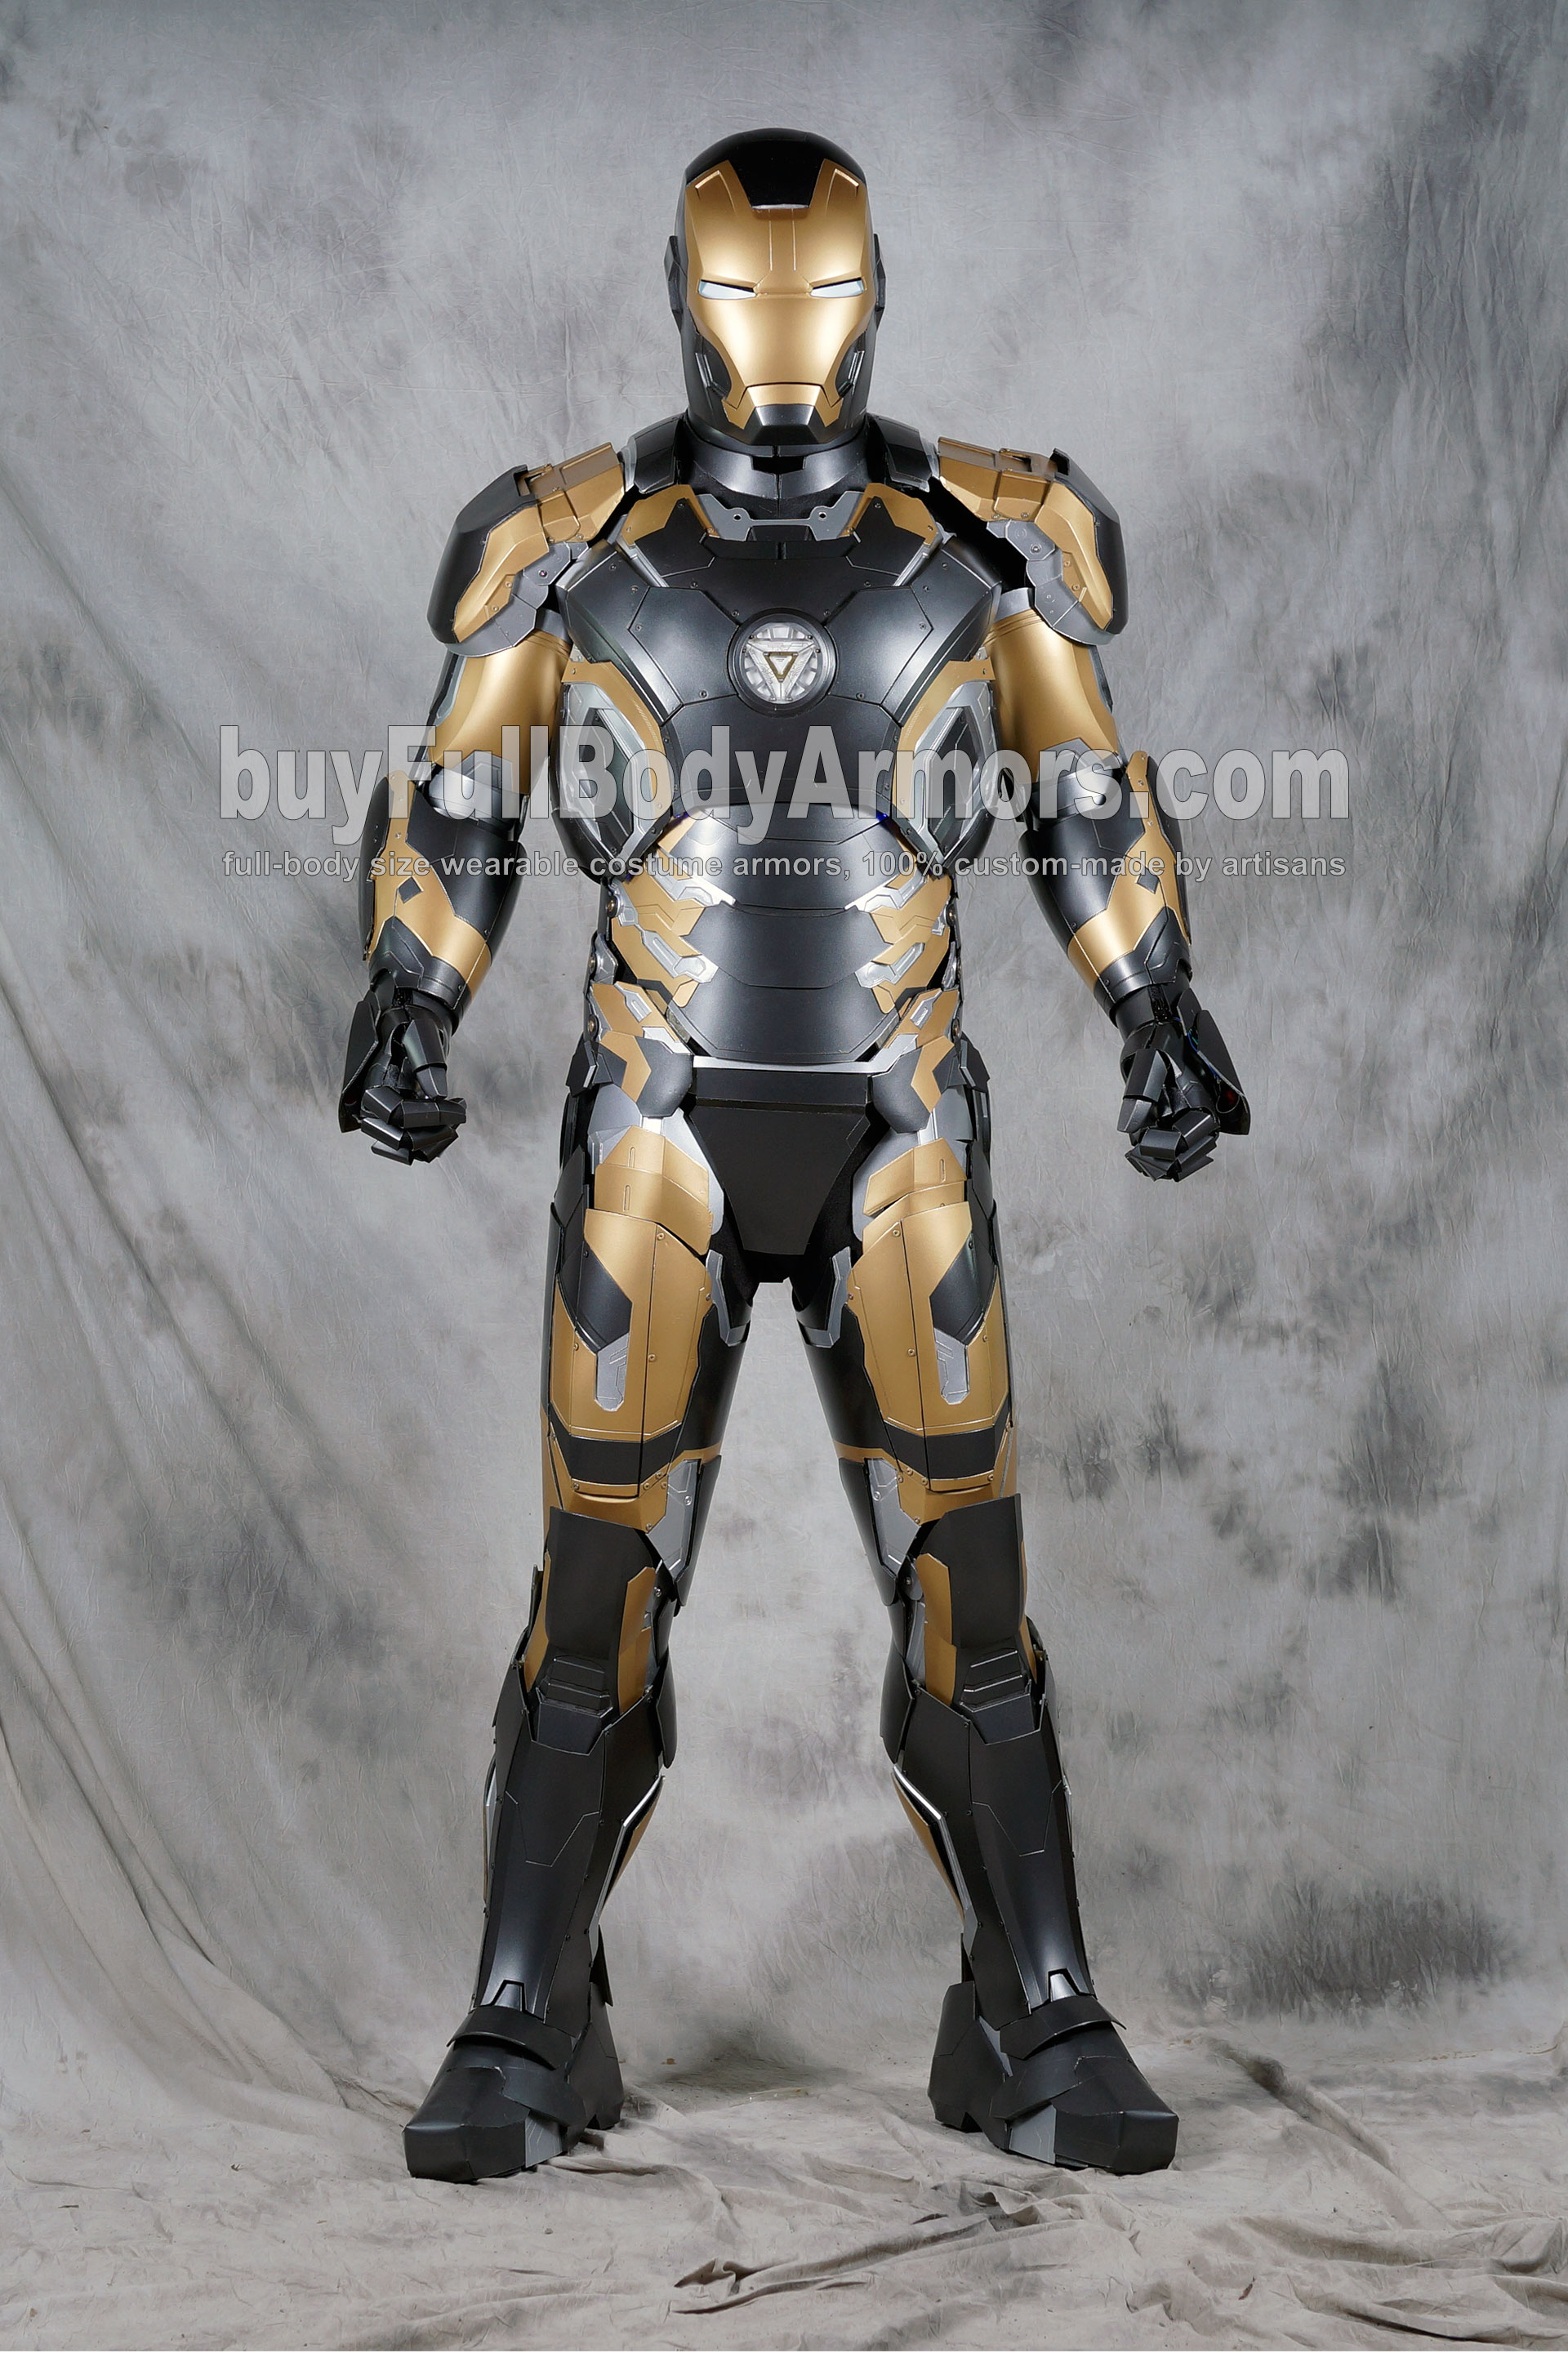 [Special Edition] Black Gold Wearable Iron Man Suit Mark 43 XLIII Armor Costume 1 & Buy Iron Man suit Halo Master Chief armor Batman costume Star ...